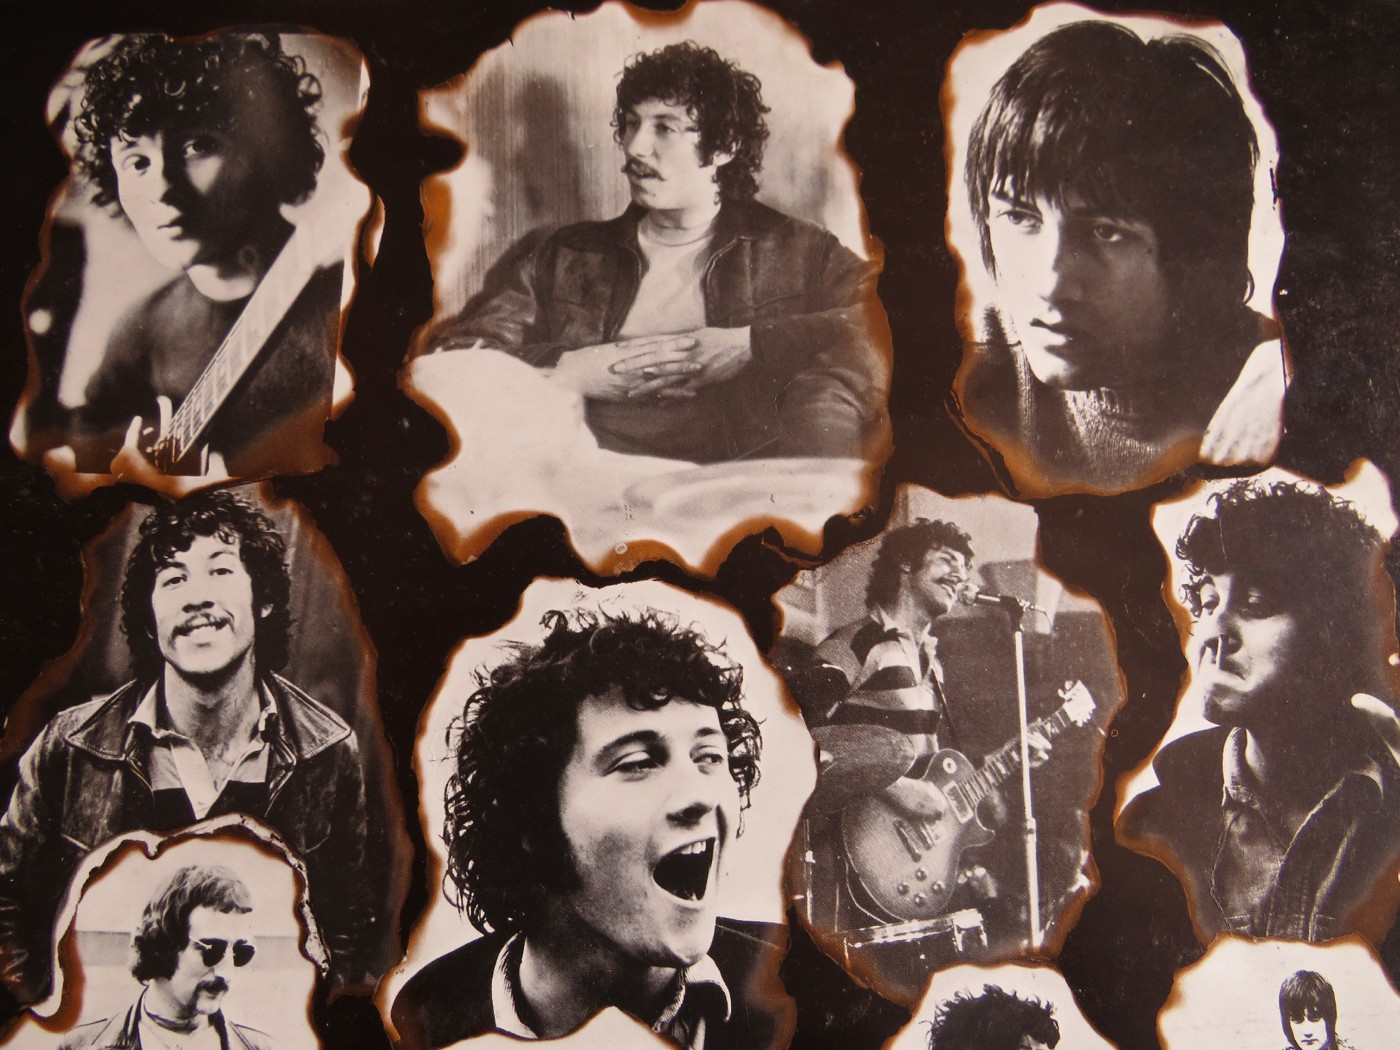 Photograph of members of Fleetwood Mac blues band 1968, from the album 'Mr Wonderful'.